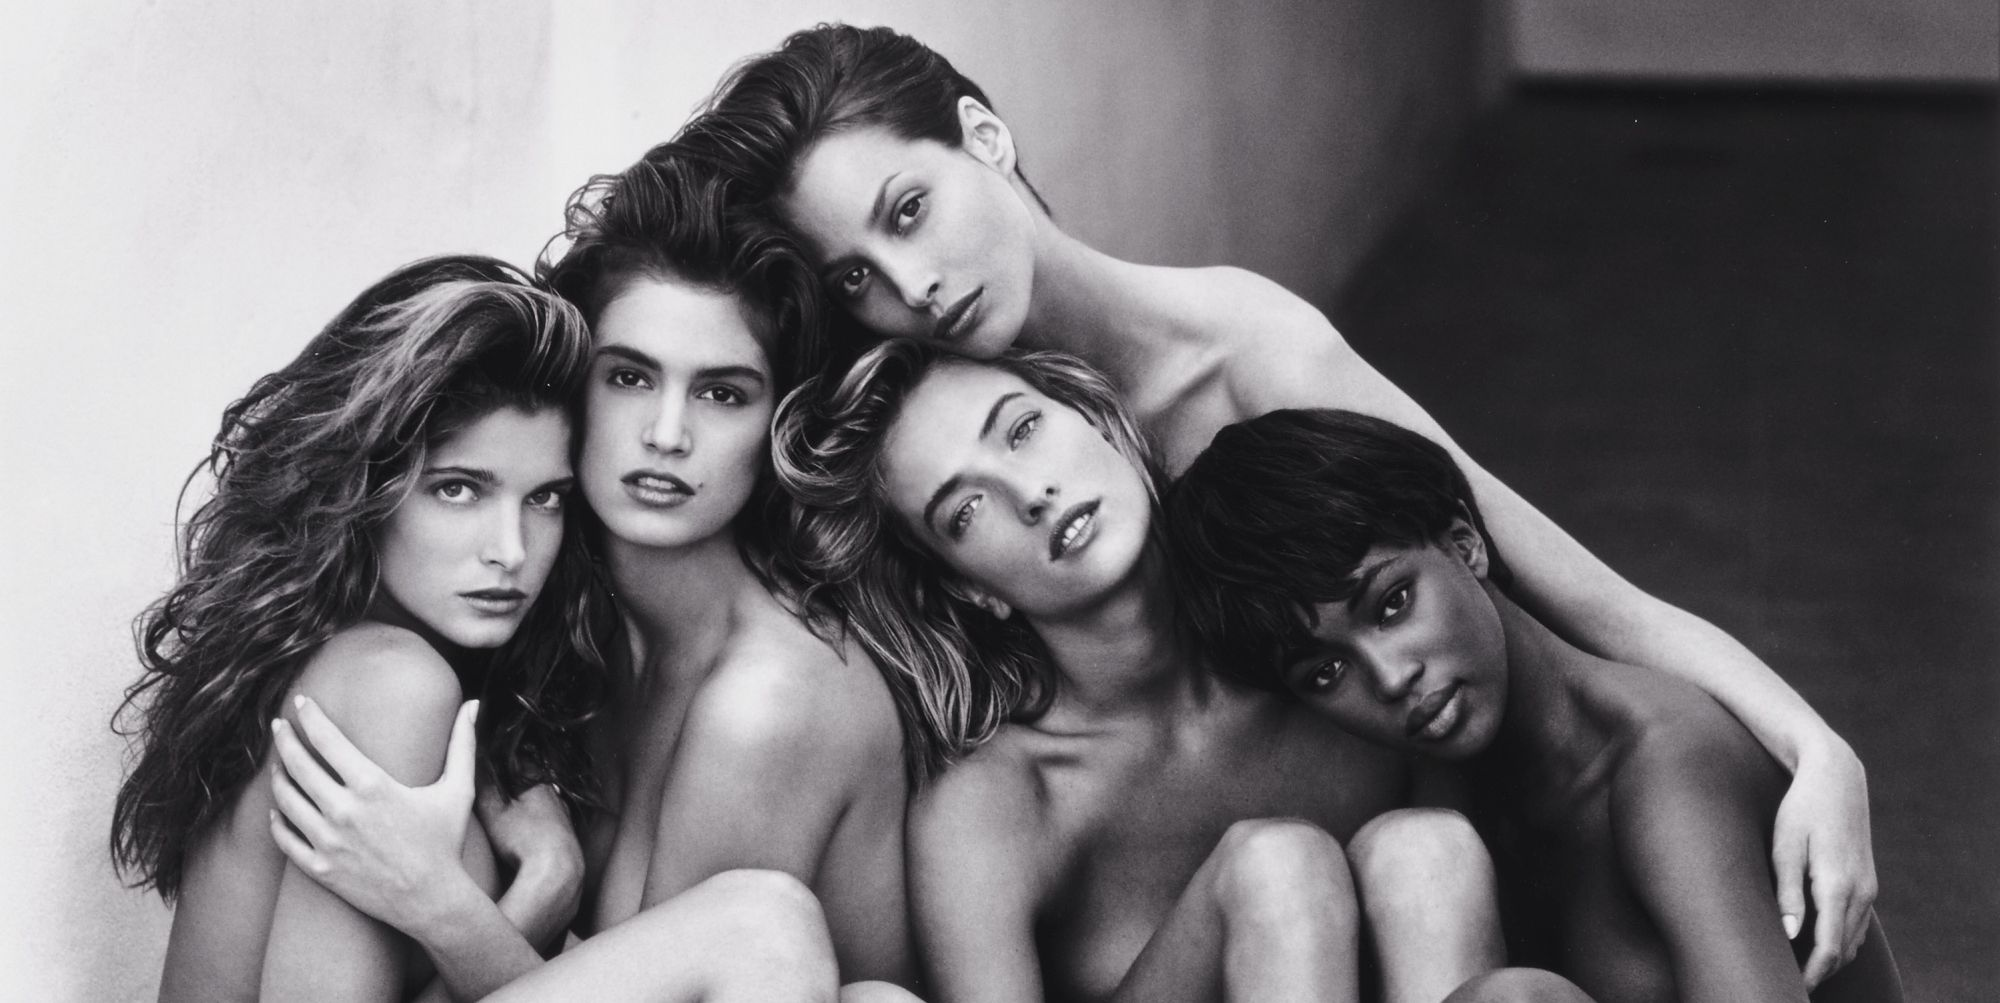 Herb Ritts,蘇富比,sothebys,超模,cindy crawford,